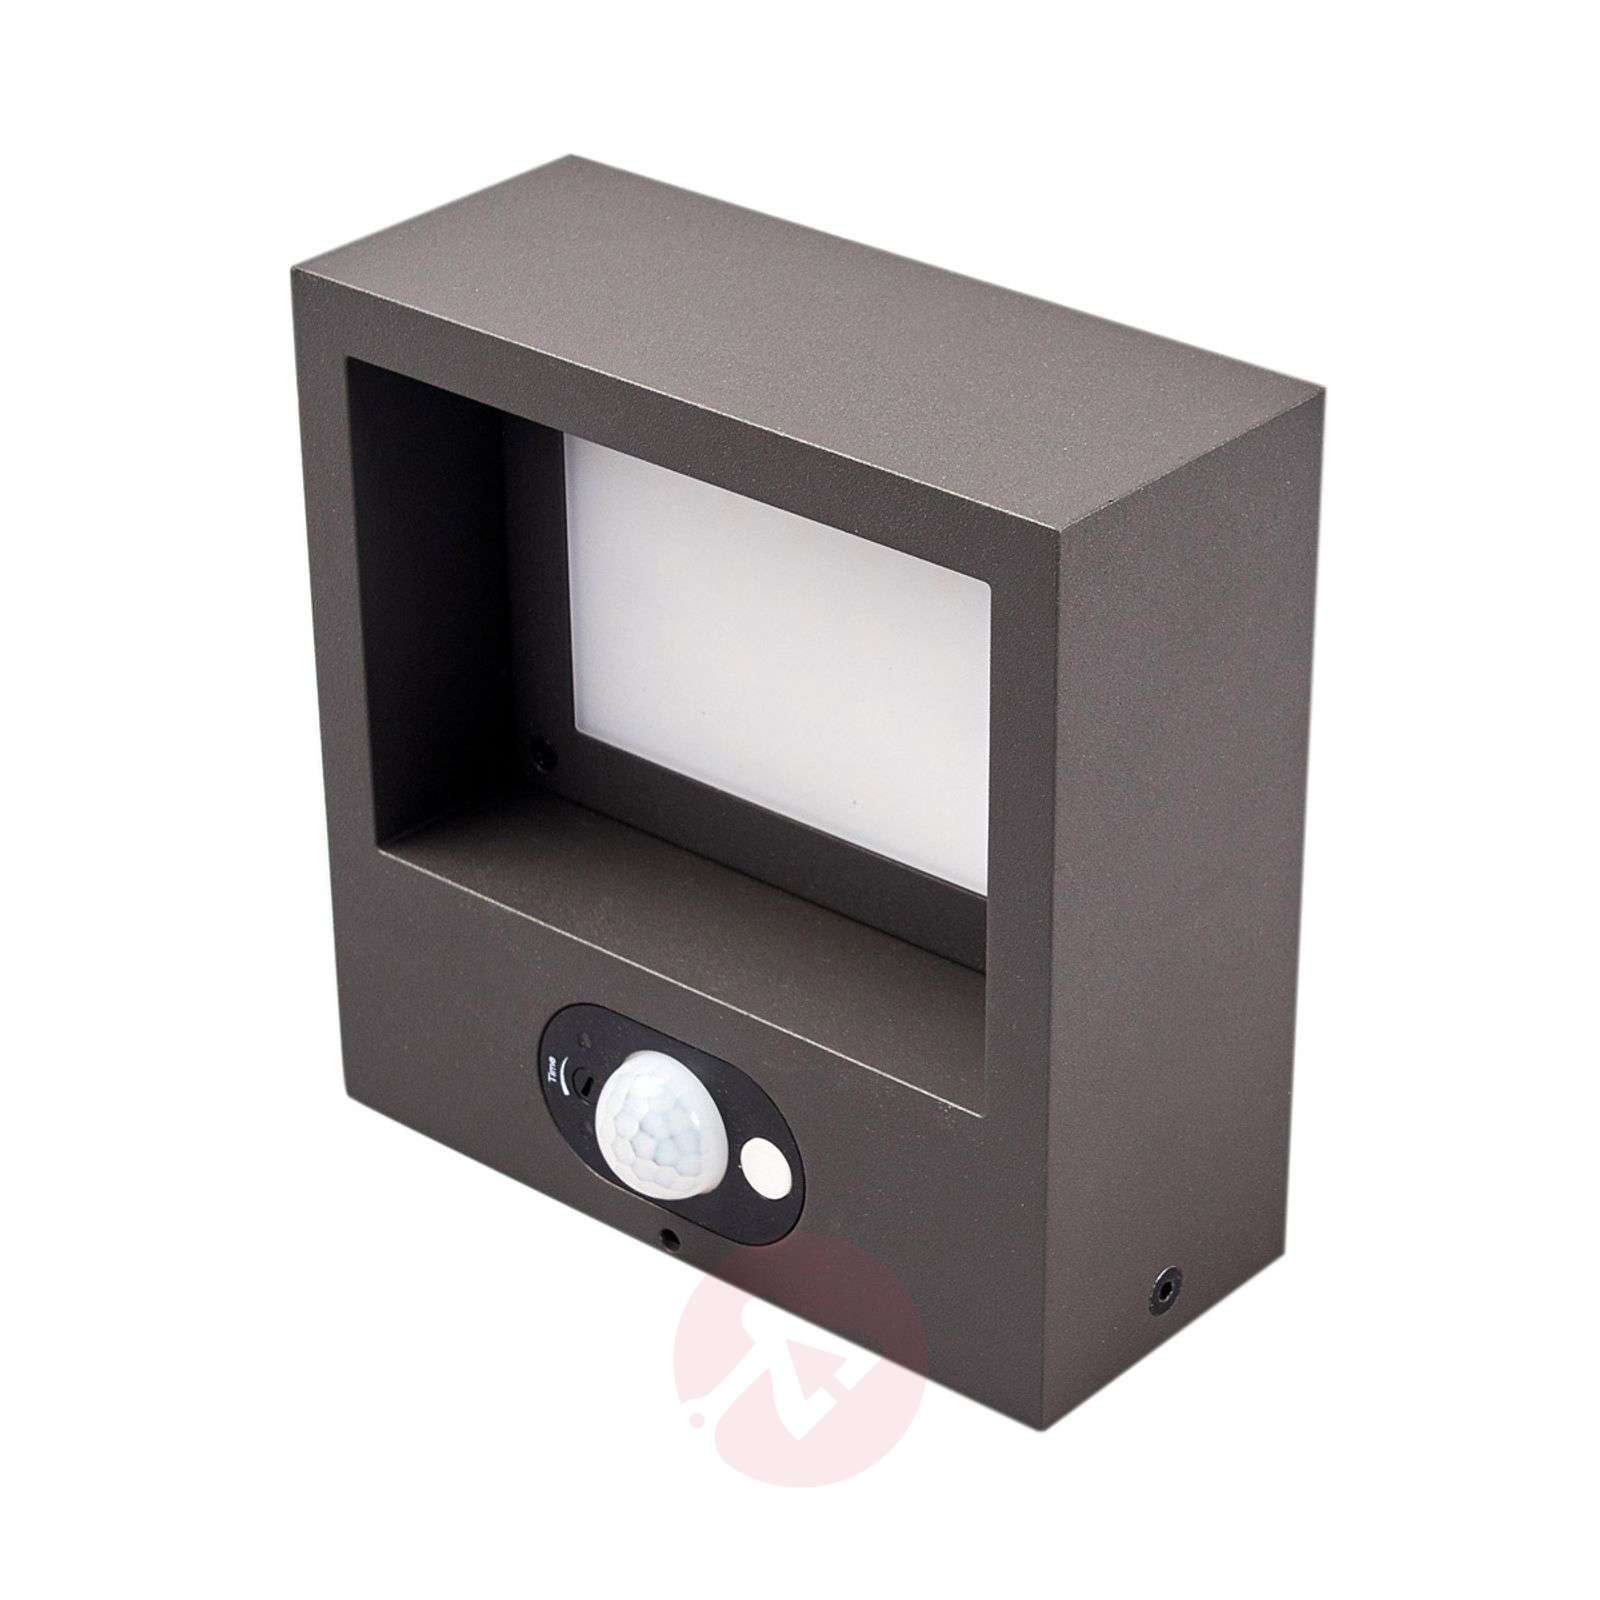 Solar powered led outdoor wall light mahra sensor lights solar powered led outdoor wall light mahra sensor 9619074 01 mozeypictures Gallery